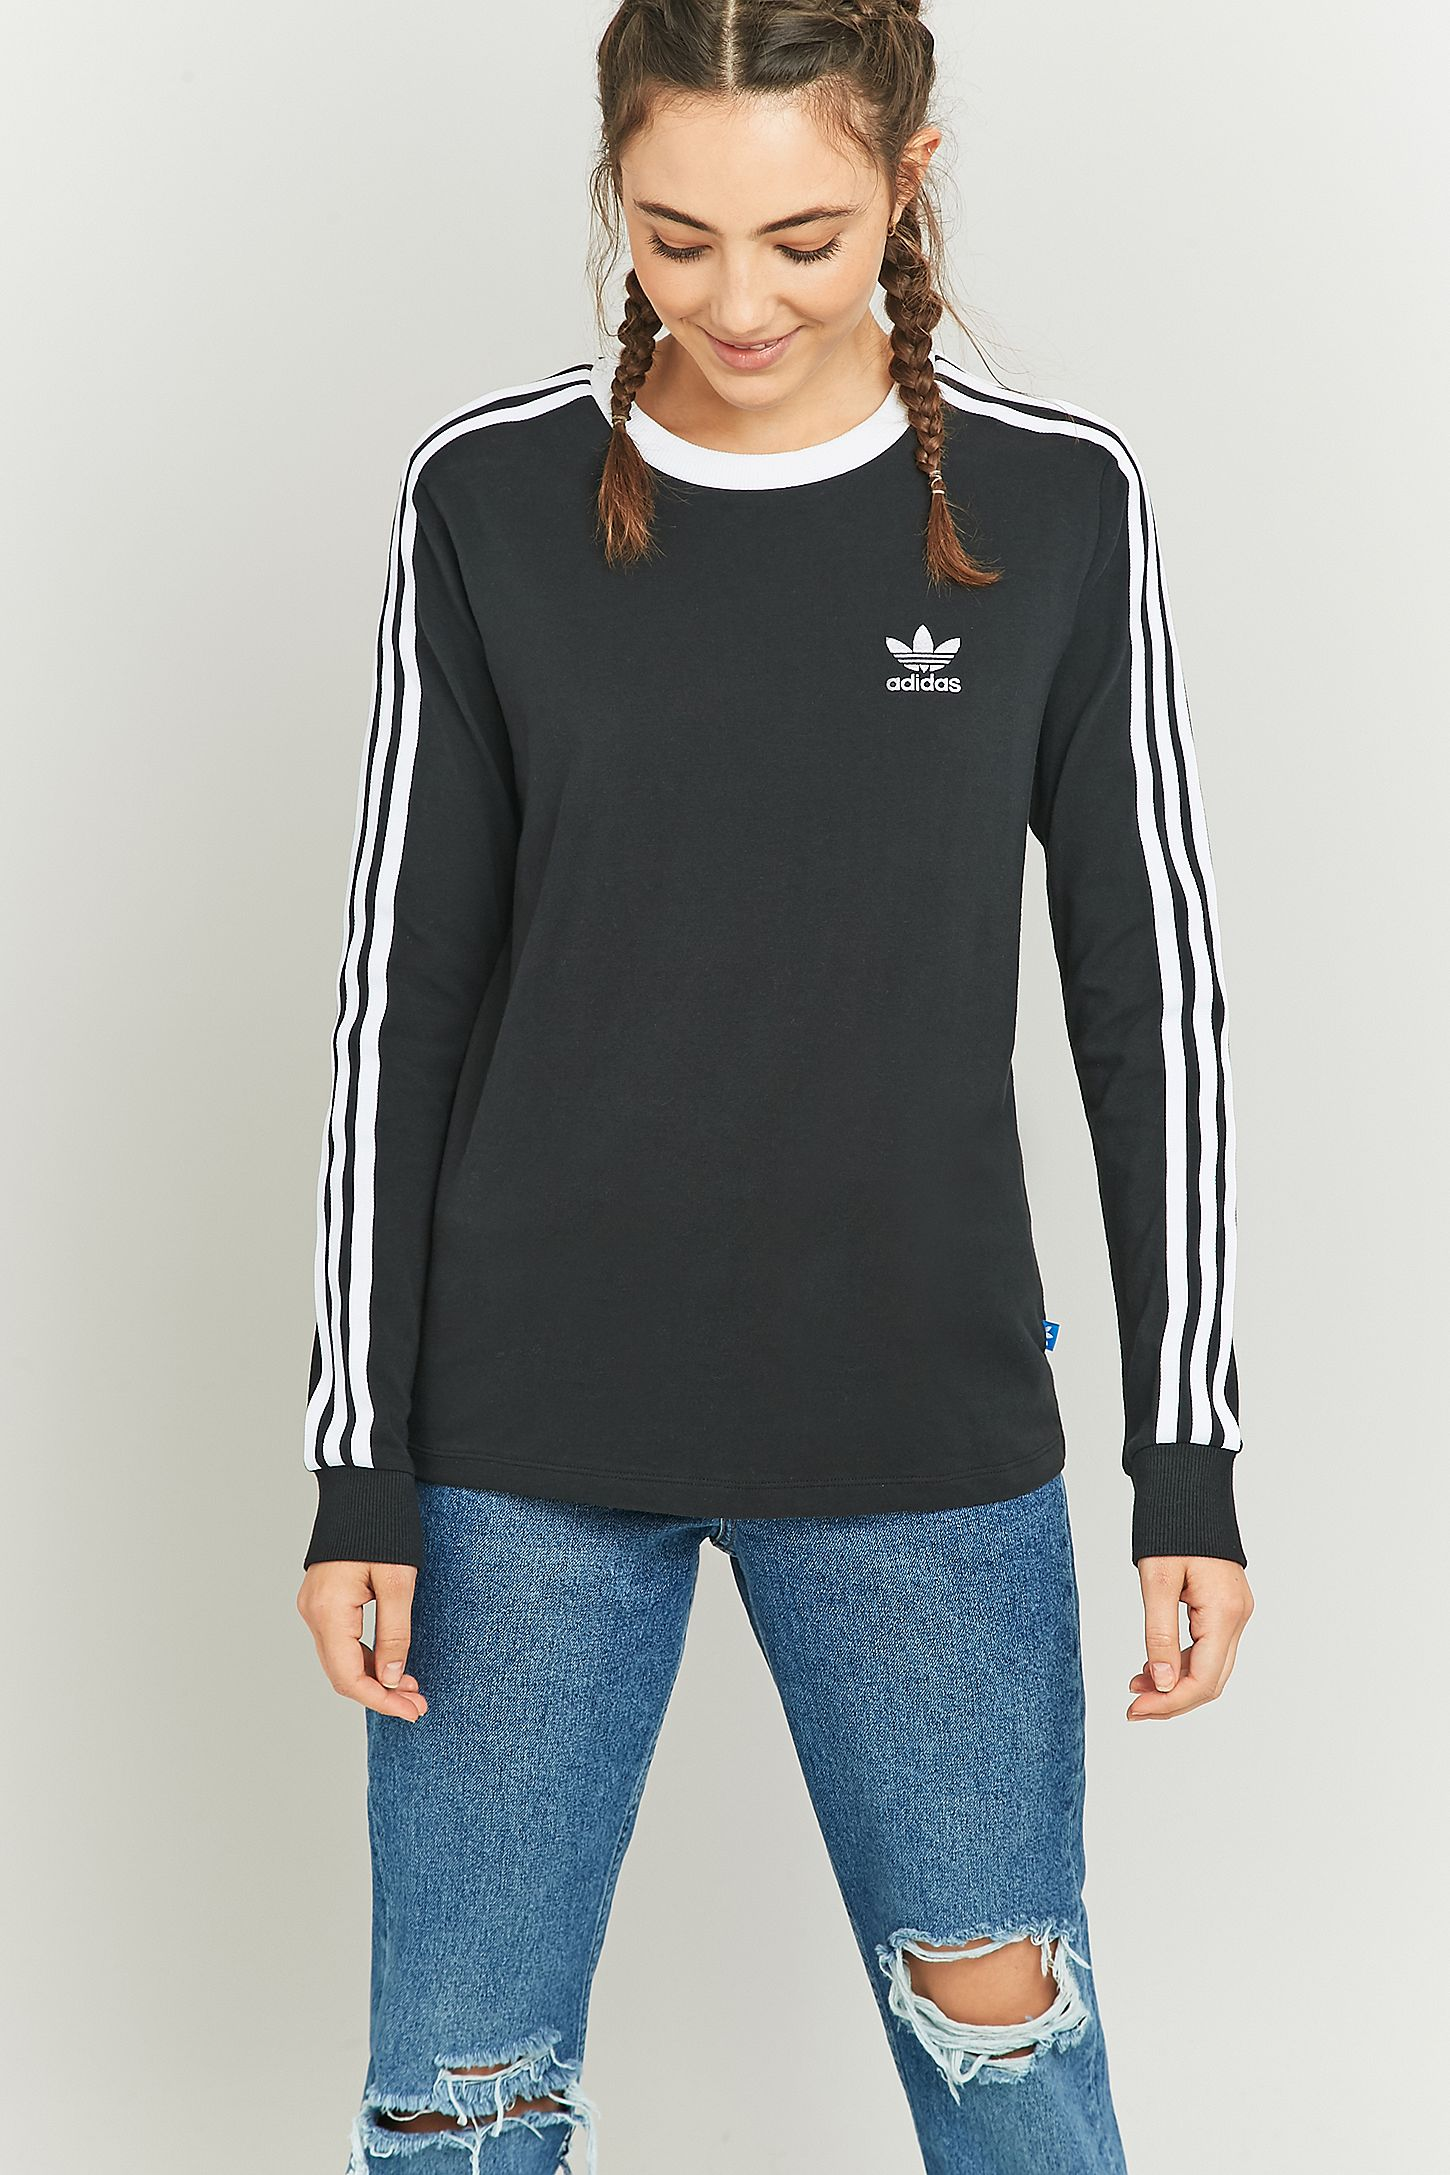 0c81f743cfd10 adidas Originals 3-Stripes Long Sleeve Black T-shirt. Click on image to  zoom. Hover to zoom. Double Tap to Zoom